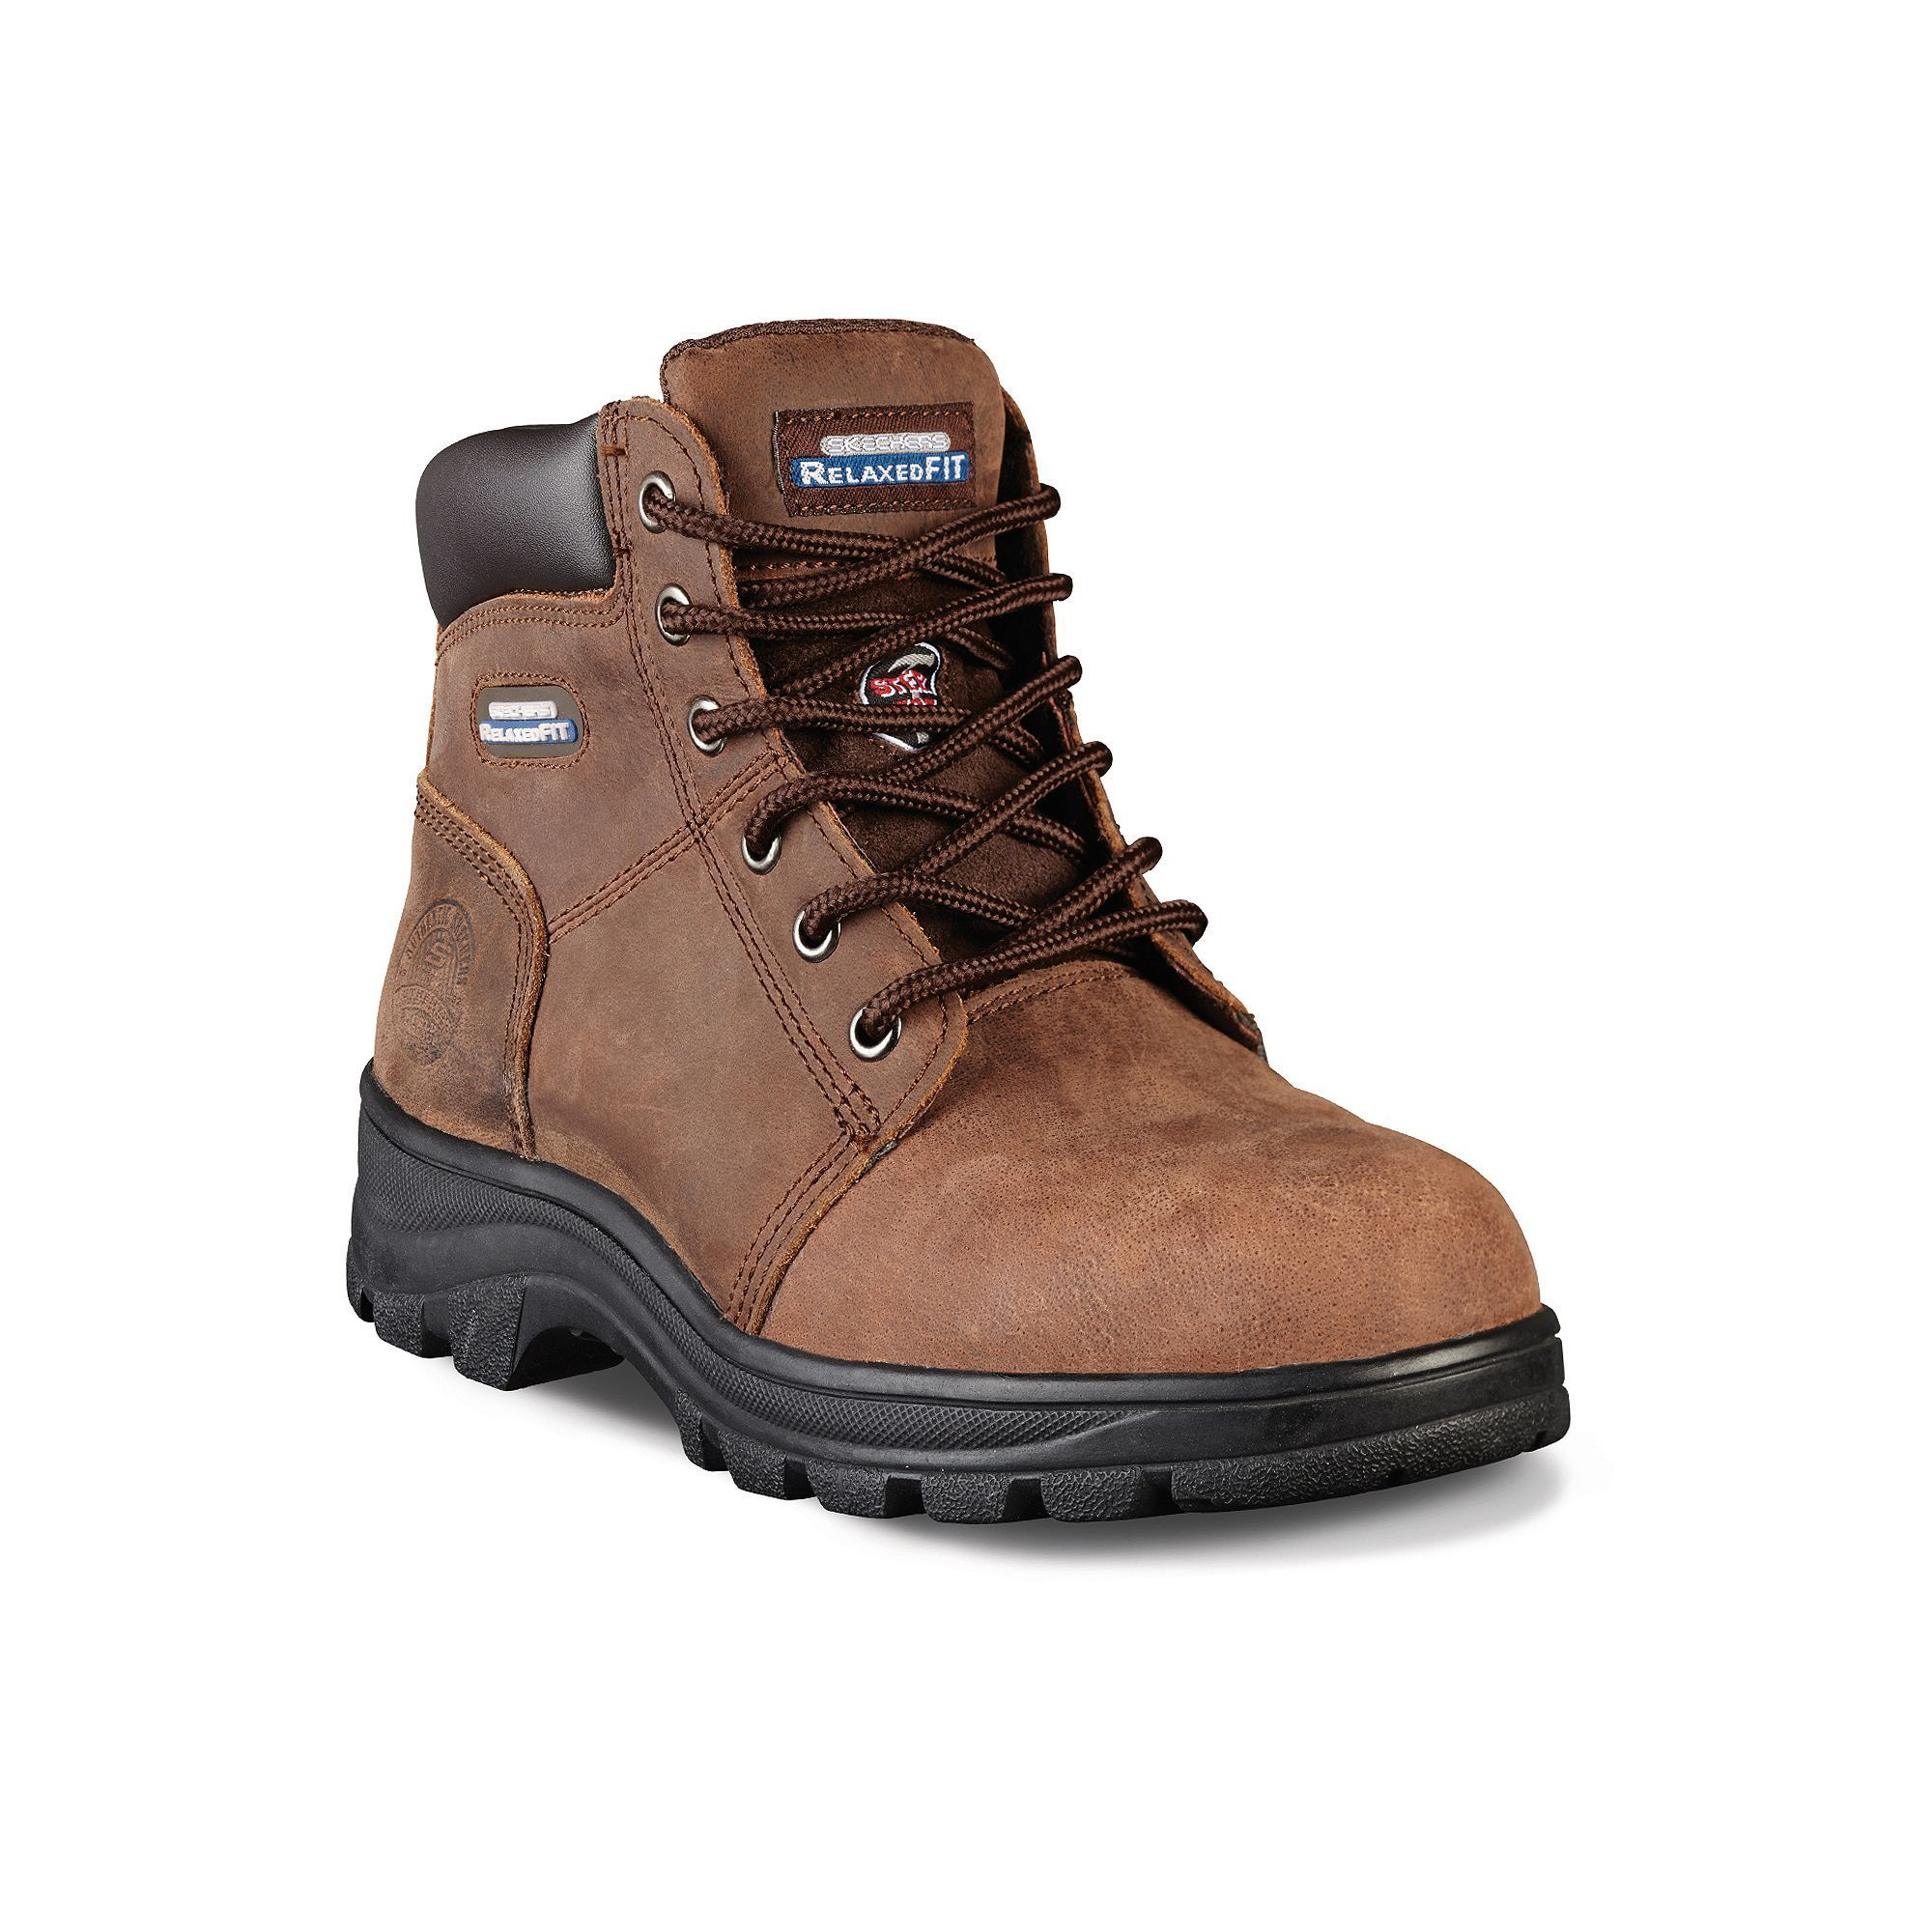 Skechers Relaxed Fit Workshire ... Peril Women's Steel-Toe Work Boots a4kRsJF